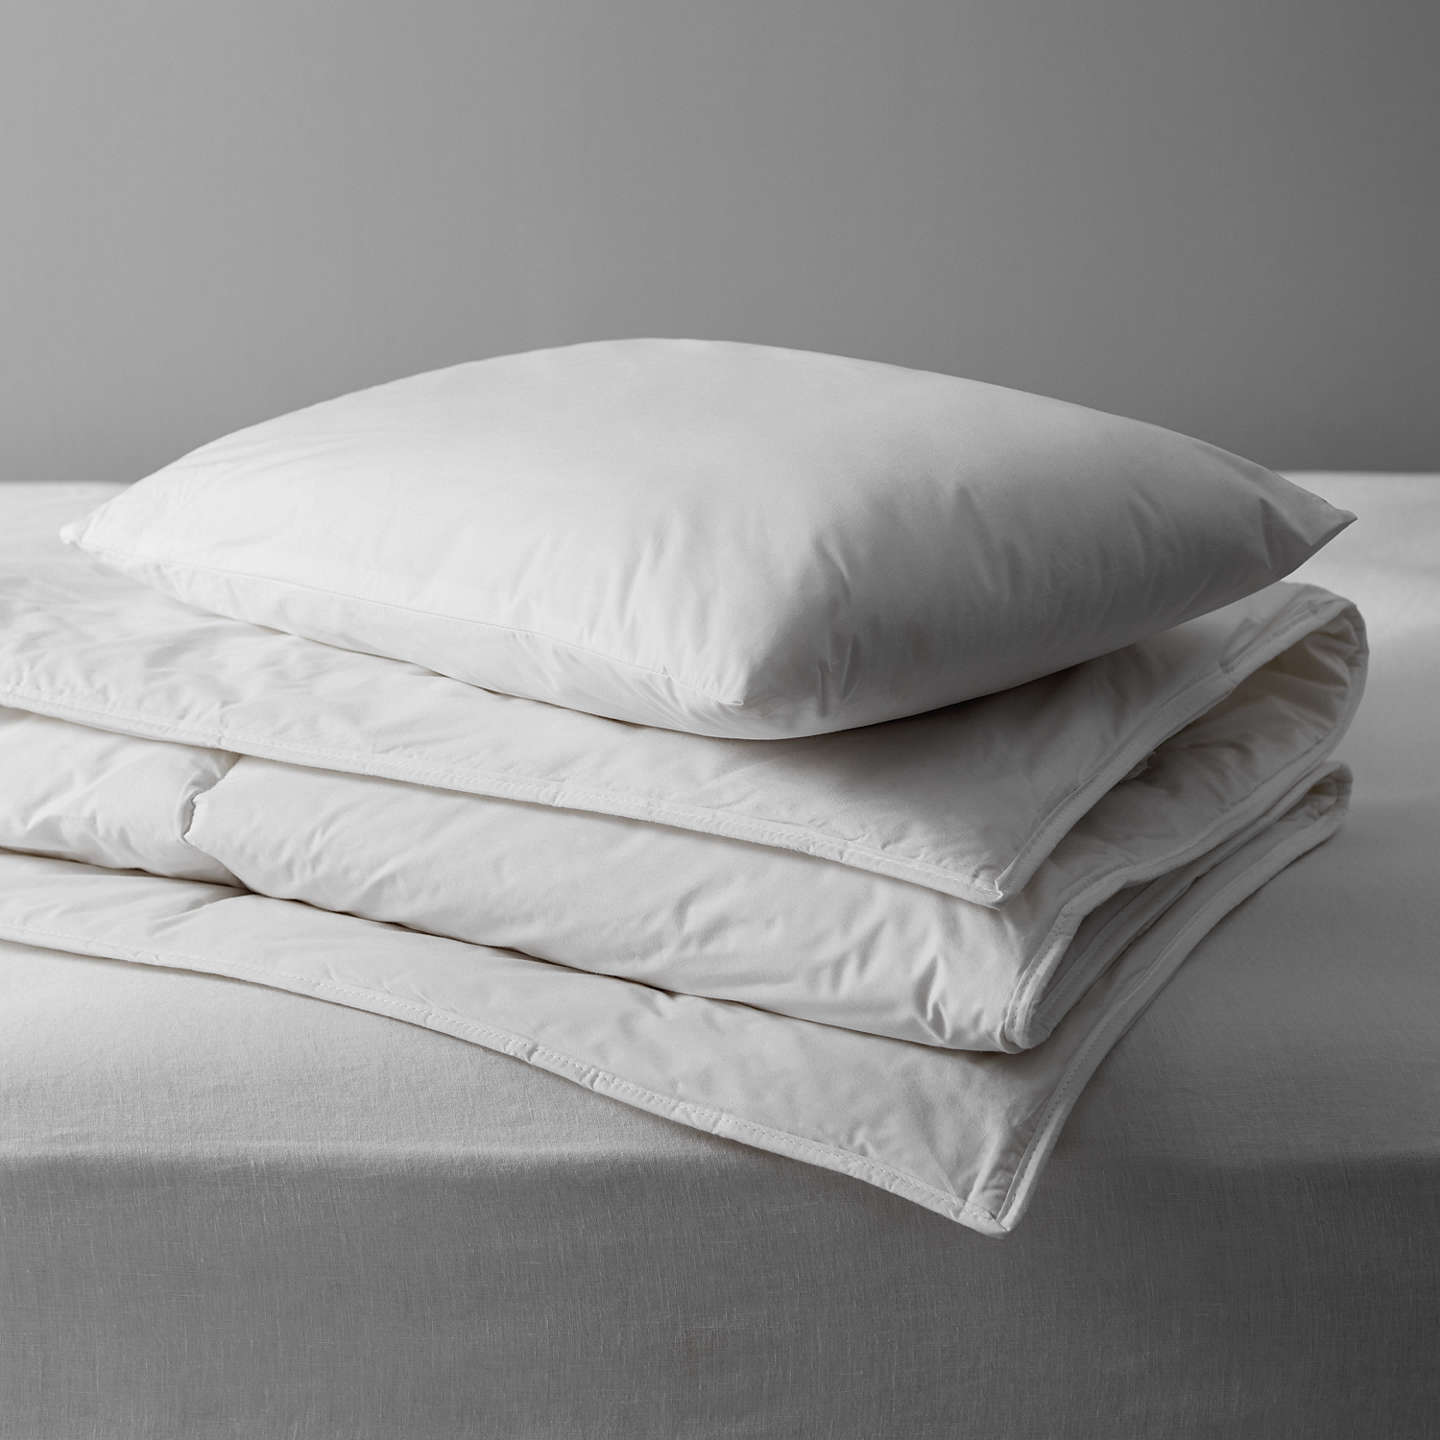 BuyDevon Duvets Little Lana Natural Wool Duvet and Pillow Set Online at johnlewis.com